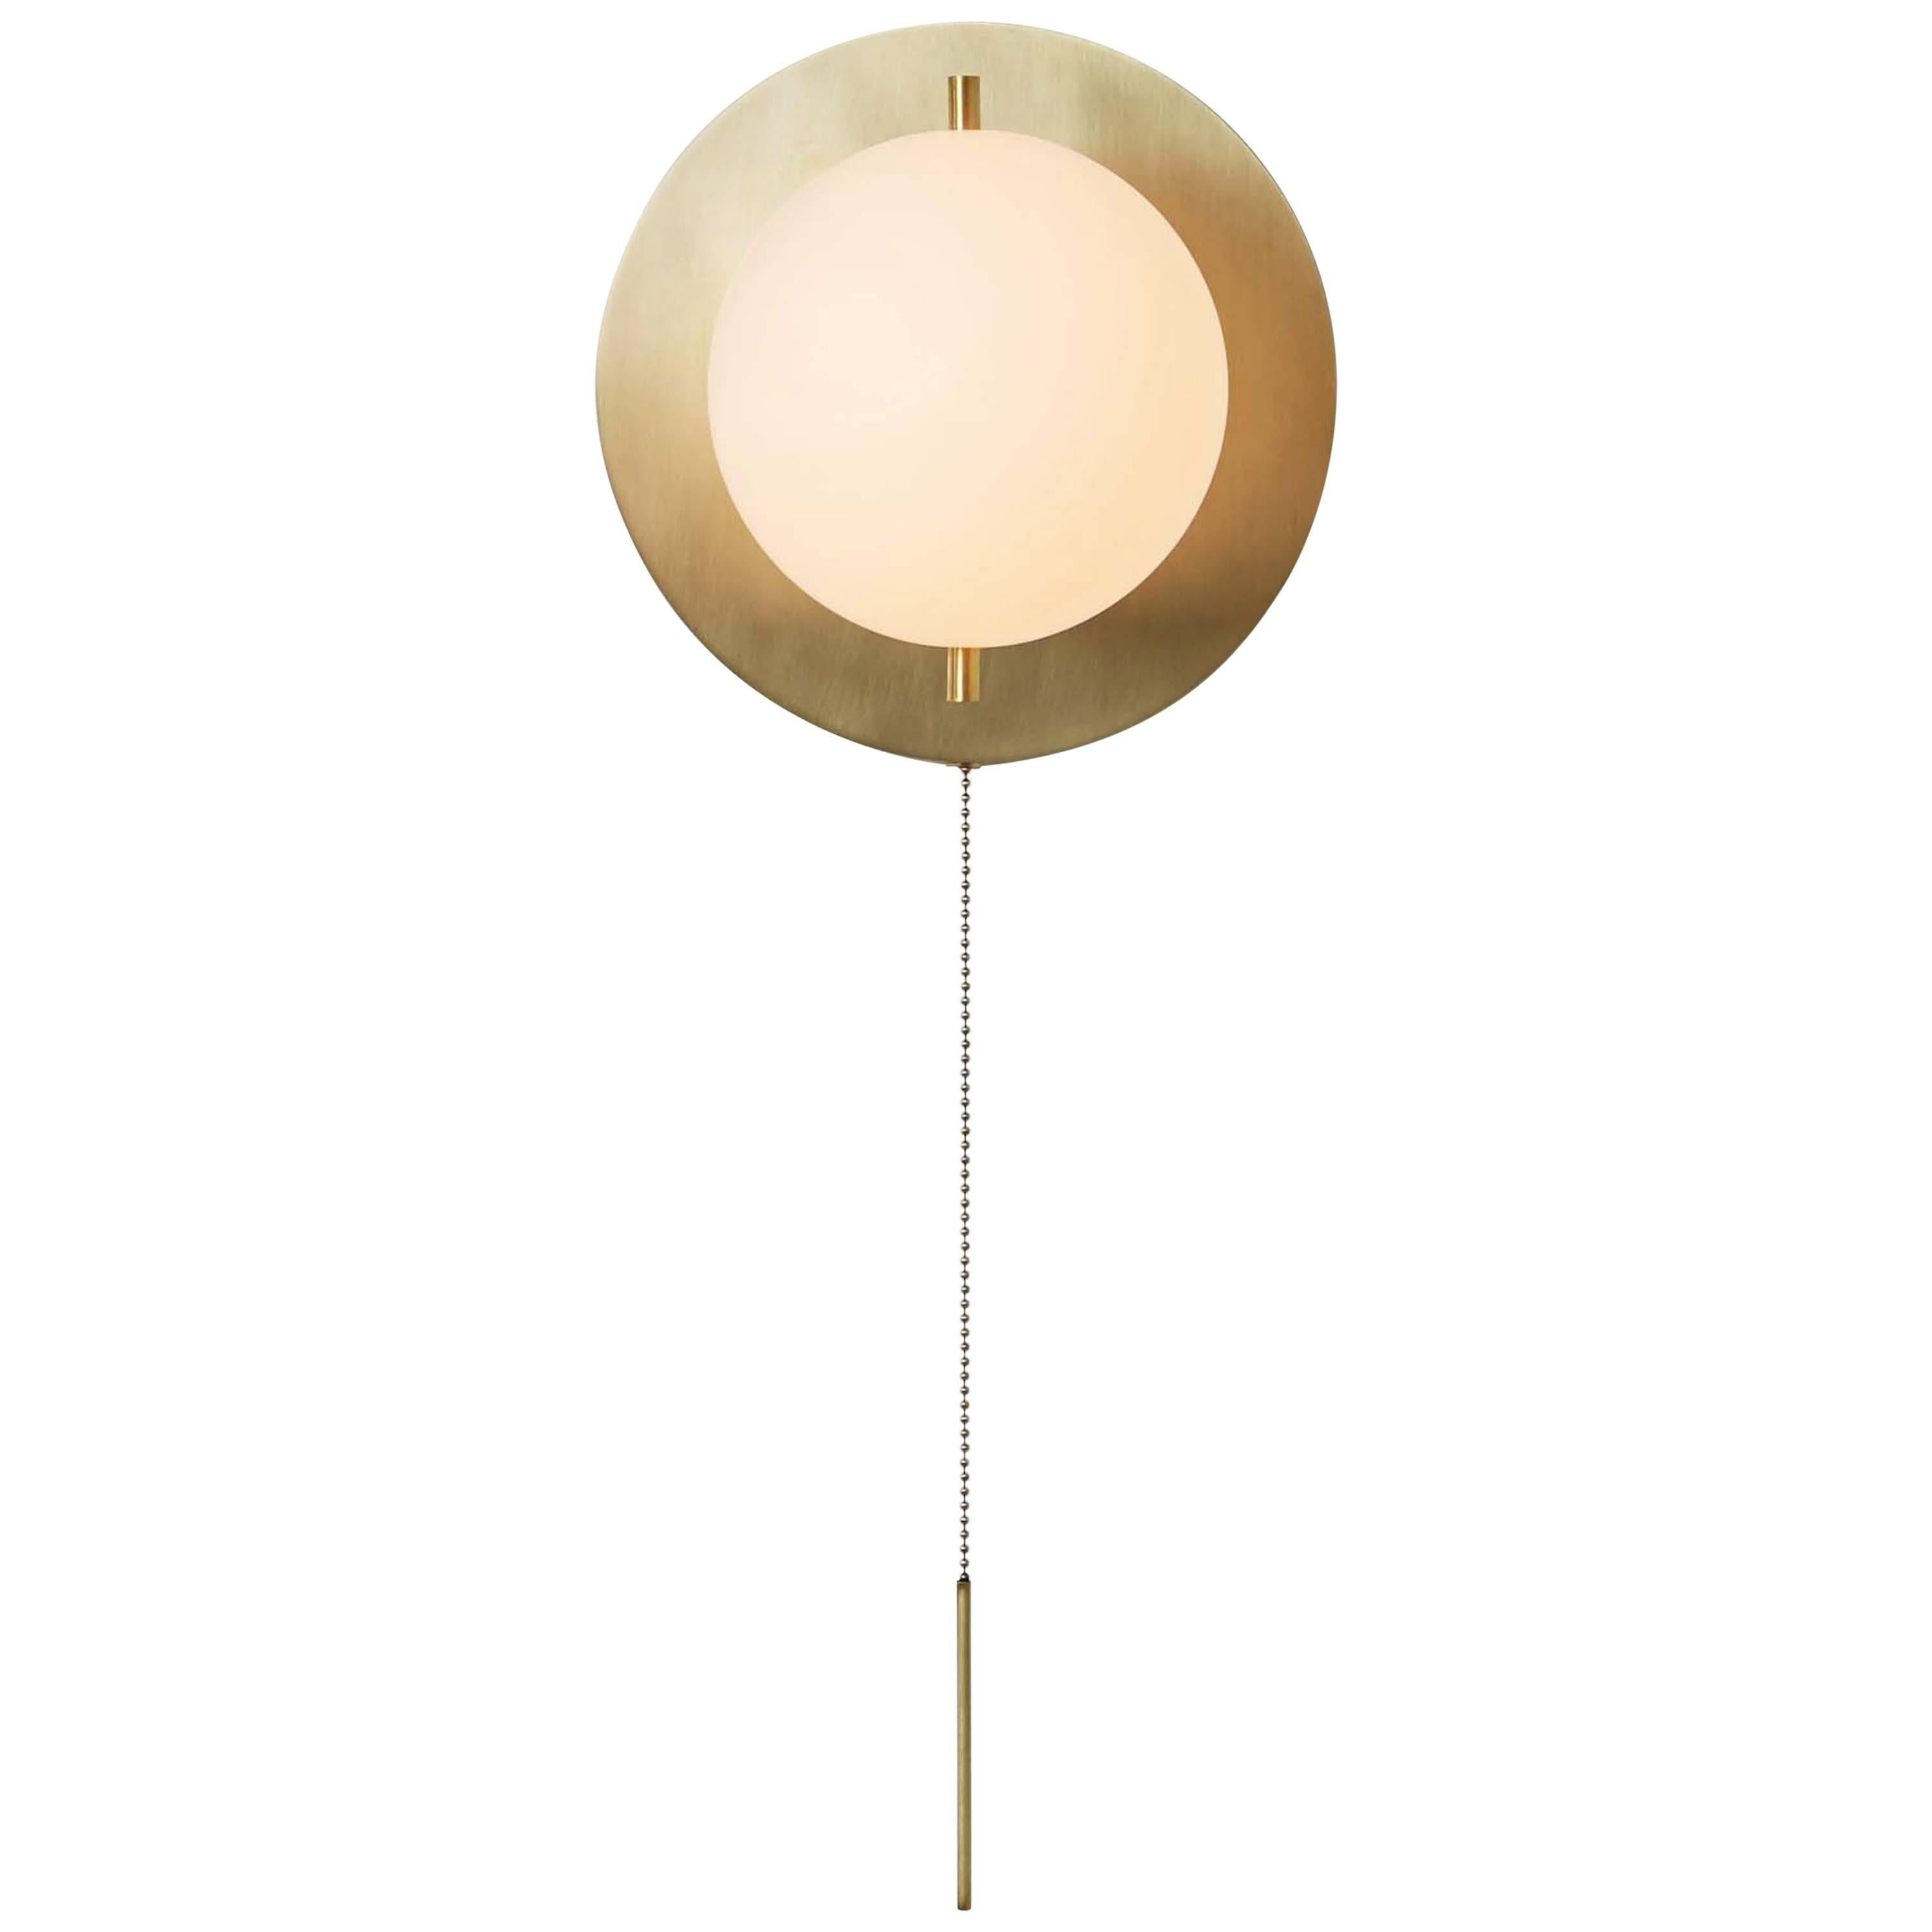 Workstead Signal Sconce in Brass with Blown Glass Globe and Brass Pull Chain